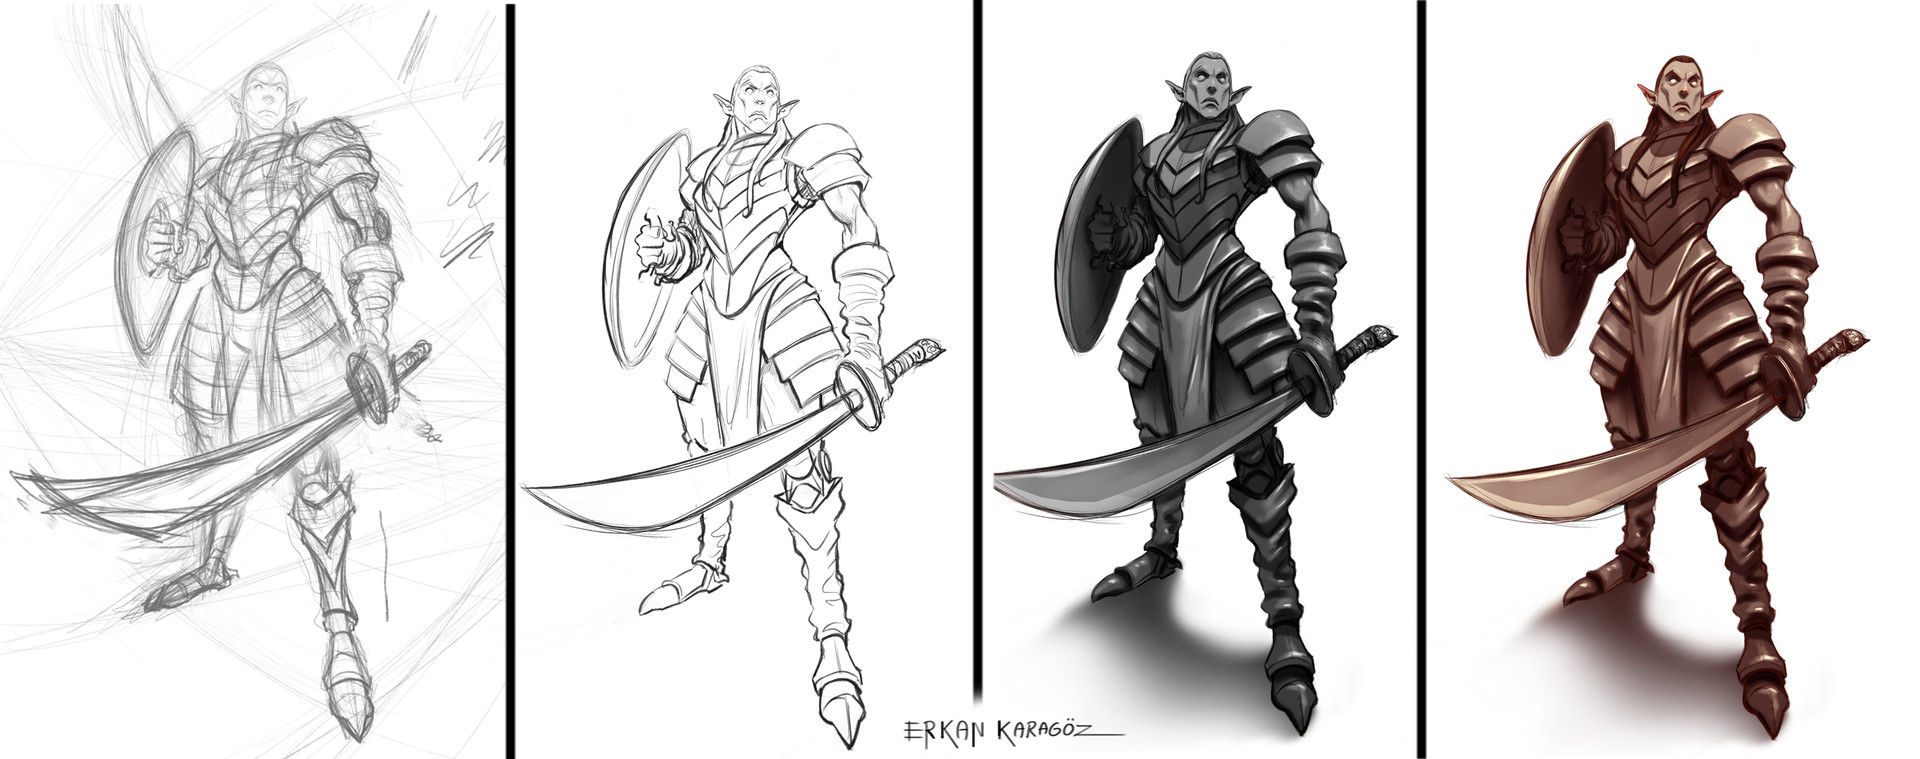 Erkan karagoez elf sketchprogress